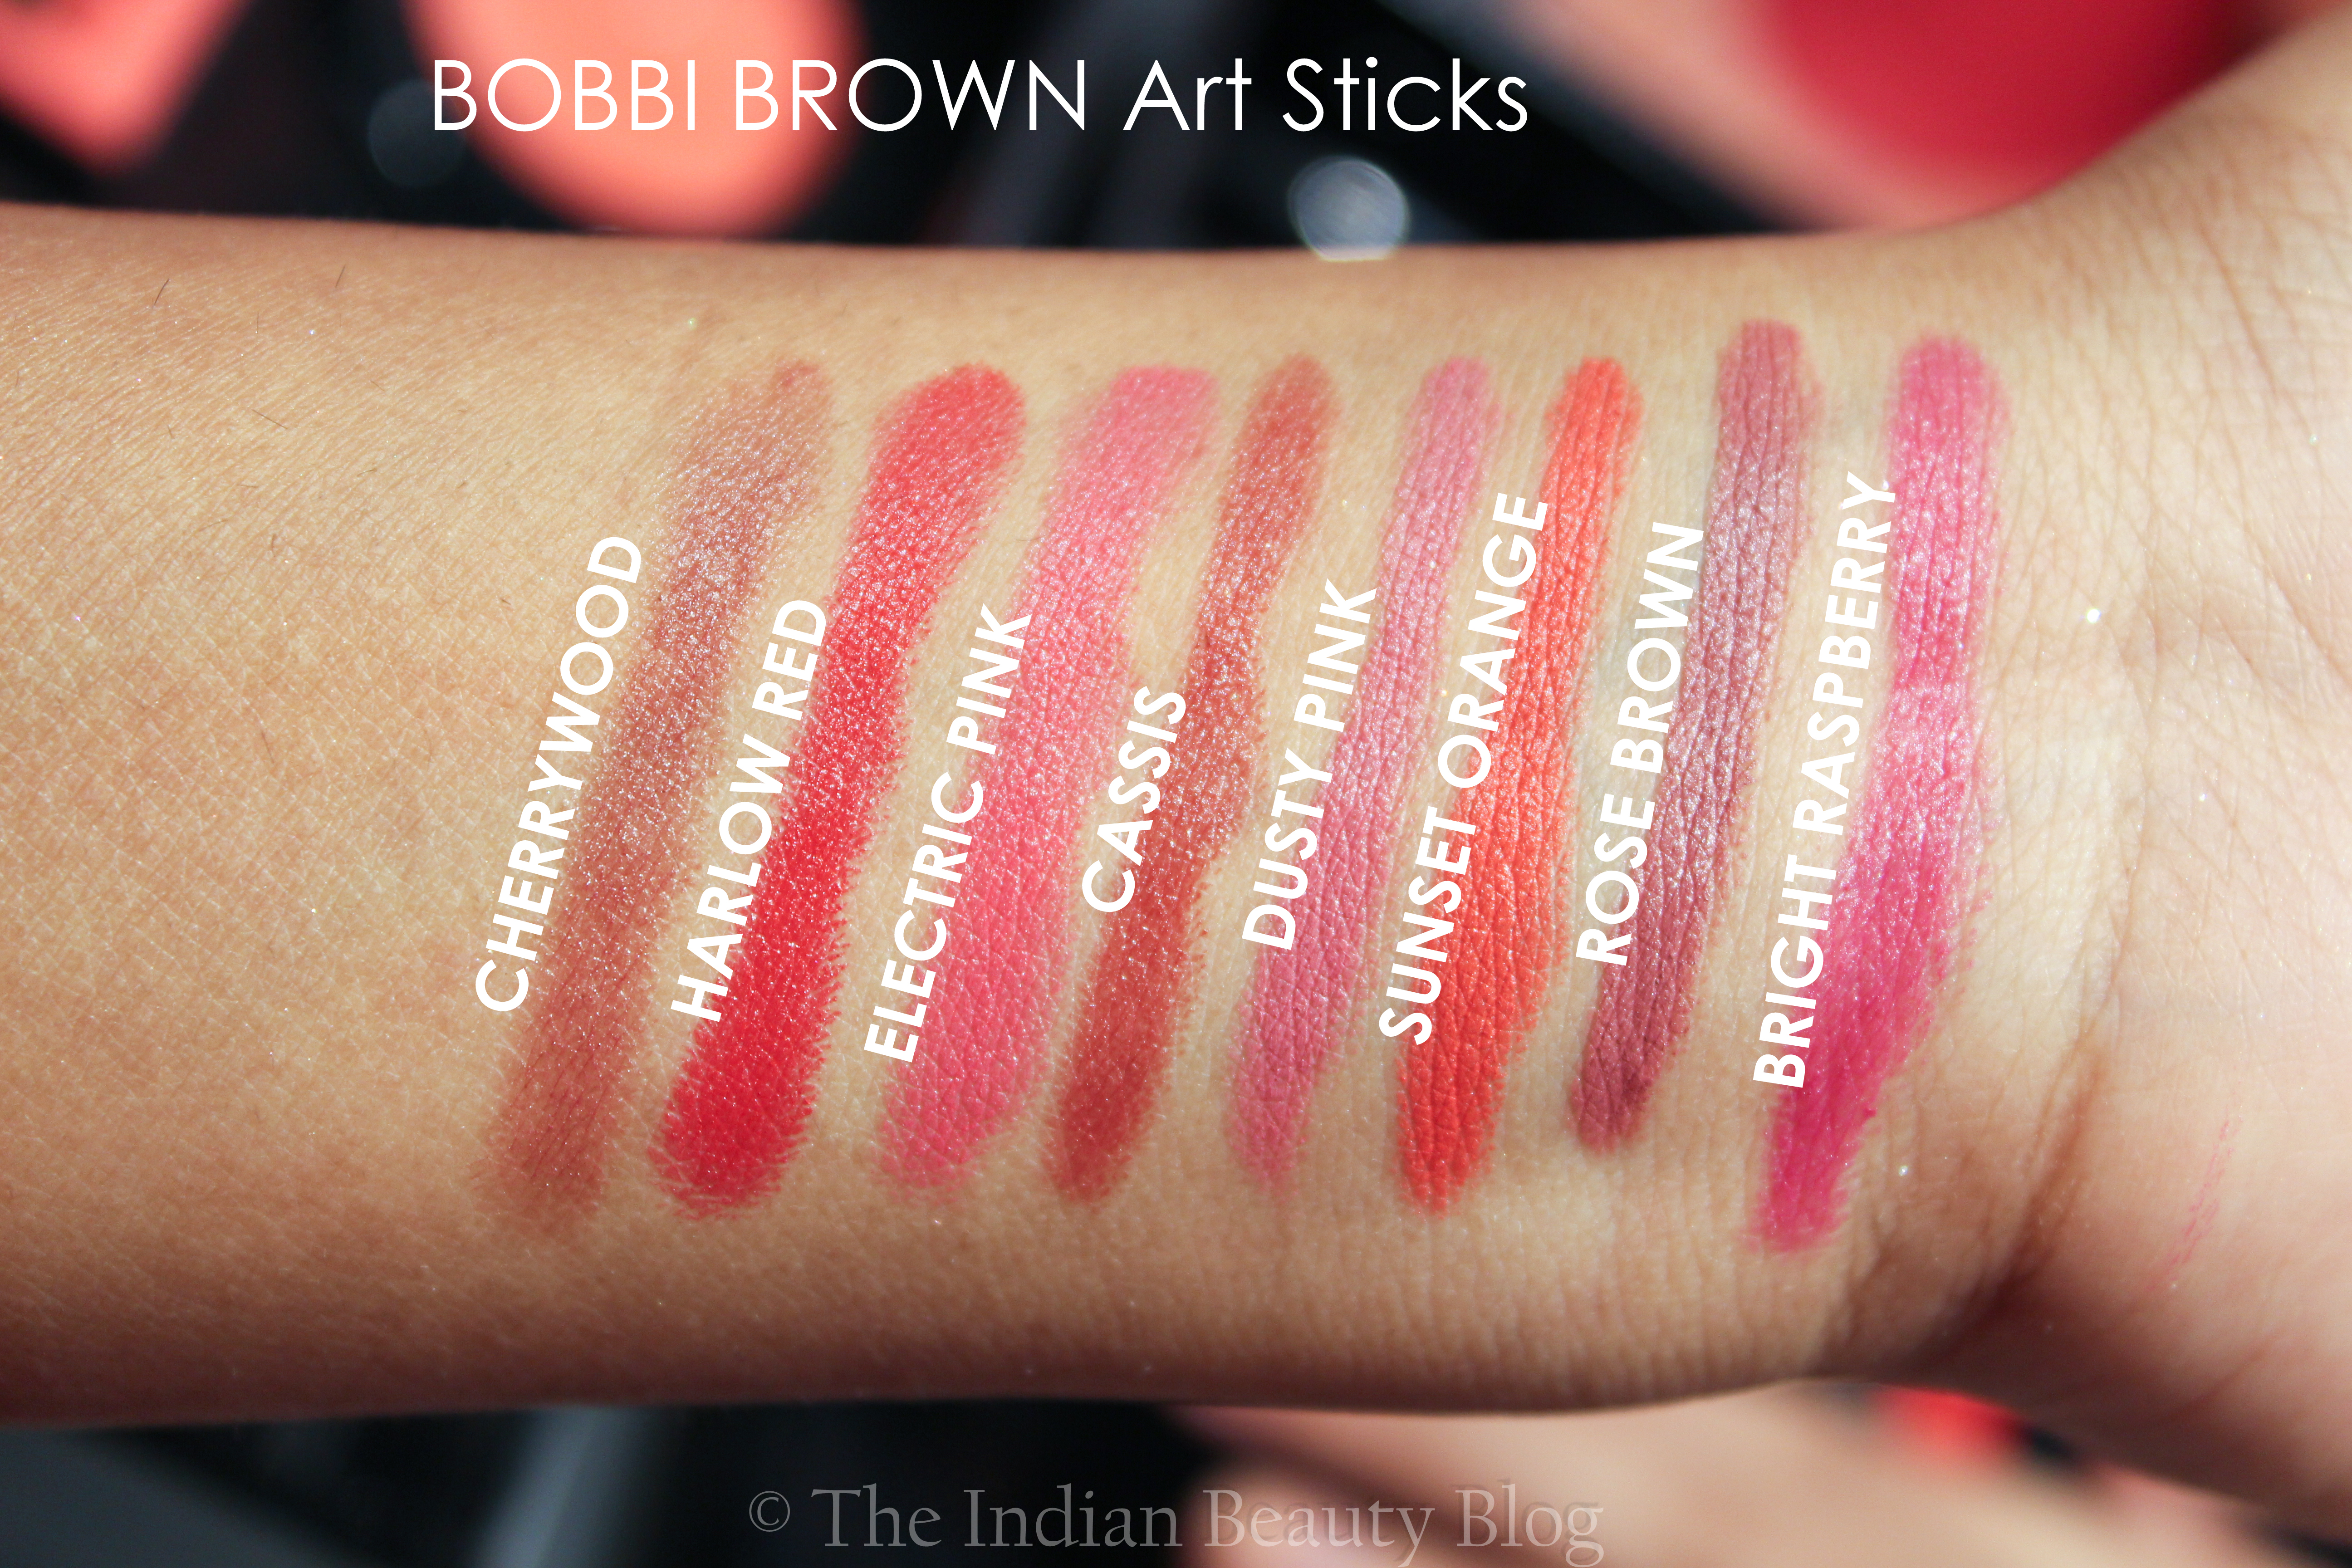 Bobbi Brown new store+ upcoming 'Nectar & Nude' collection ...